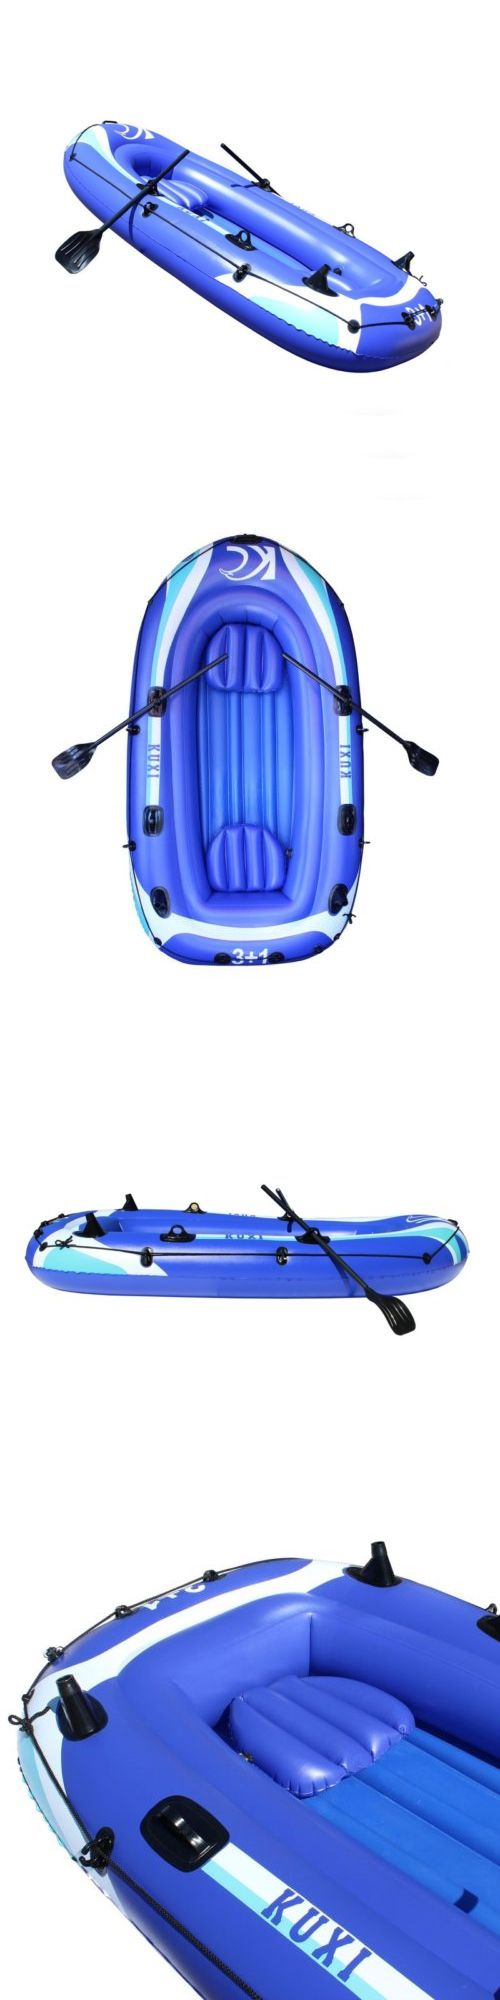 Other Kayak Canoe and Rafting 36123: Aleko 8 Ft Inflatable Rubber Boat For 3 Person With Set Of Oars Color Blue -> BUY IT NOW ONLY: $69 on eBay!